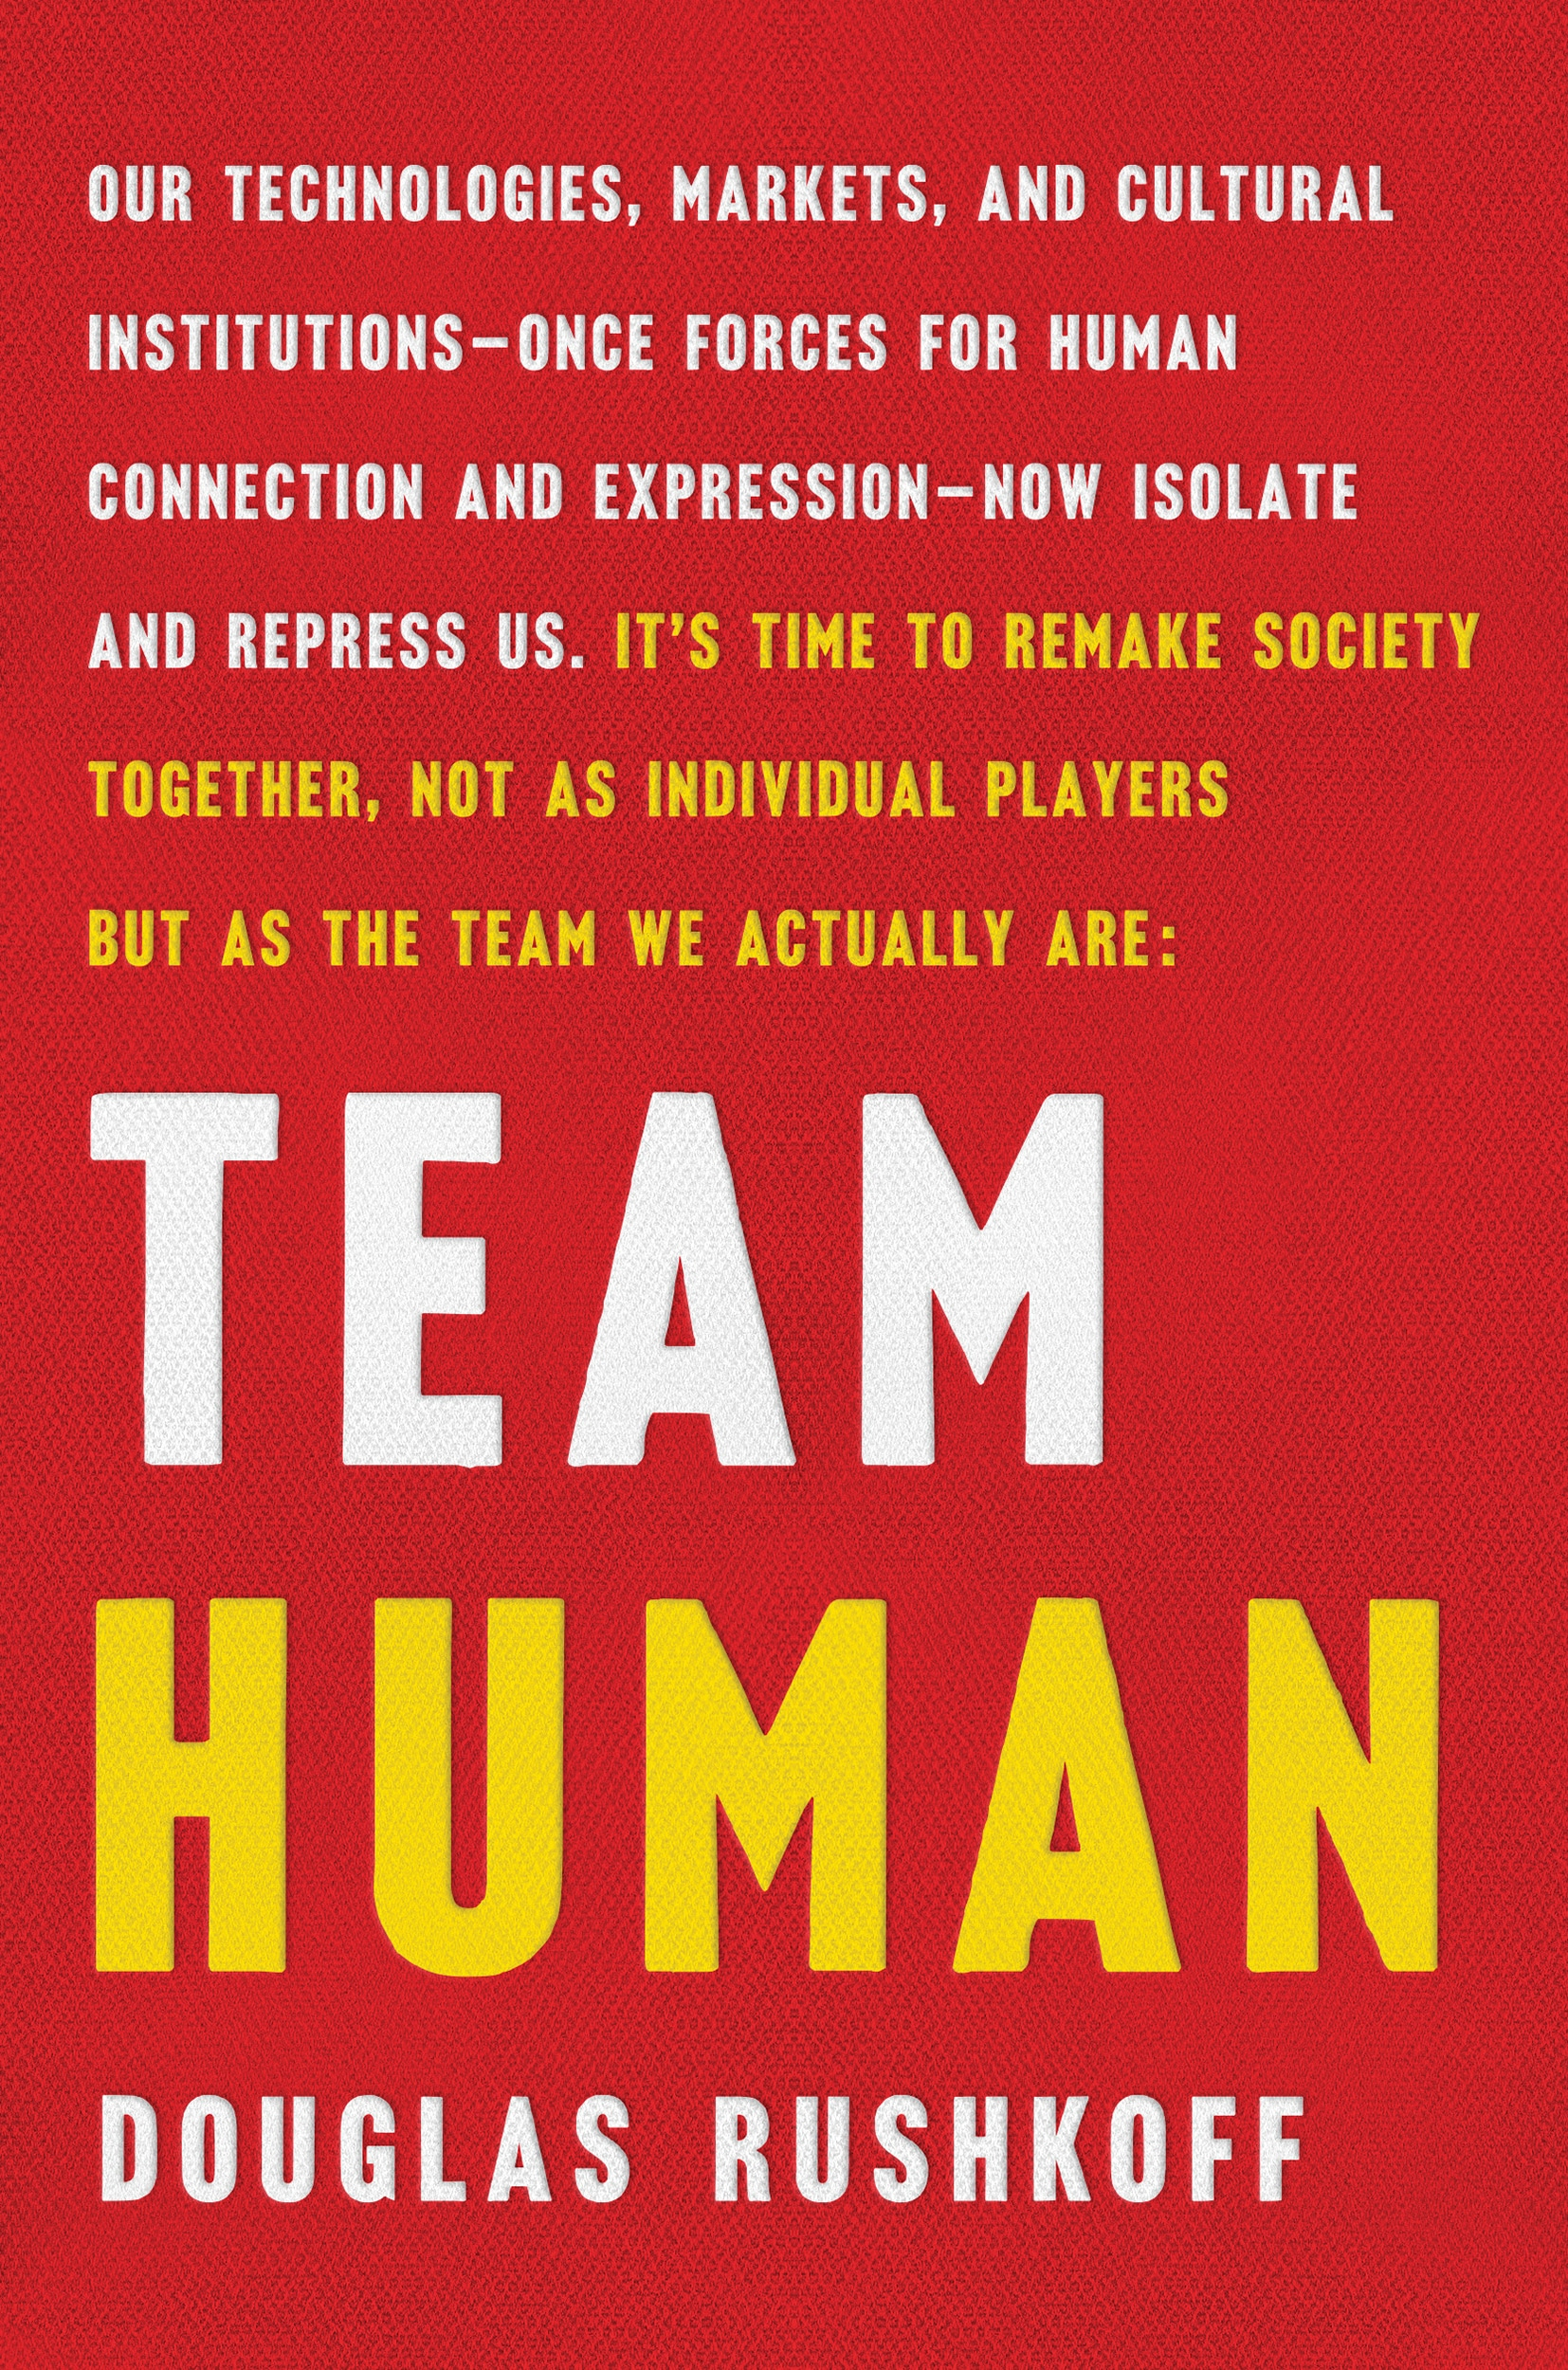 Team Human by Douglas Rushkoff Book Cover